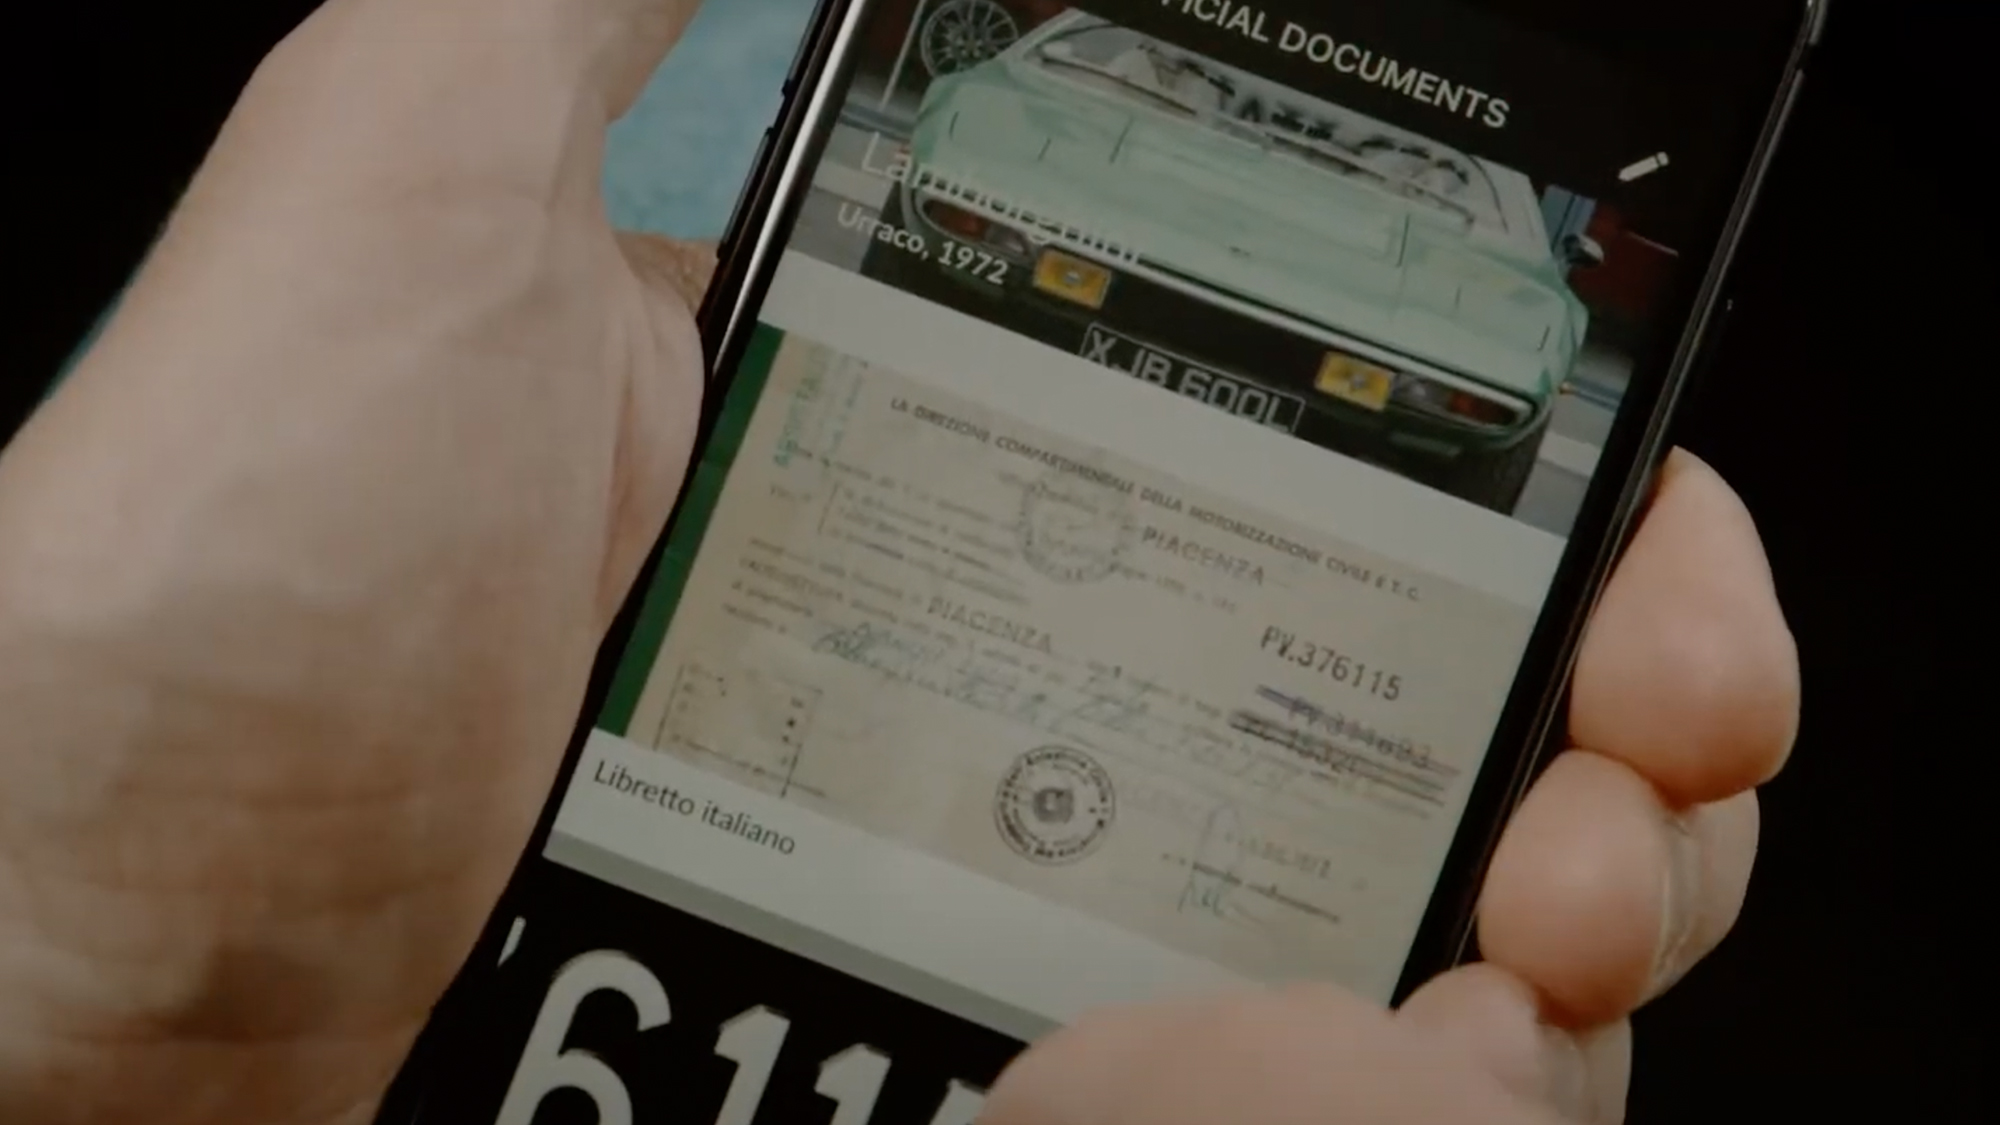 Digital storage for your classic car documents